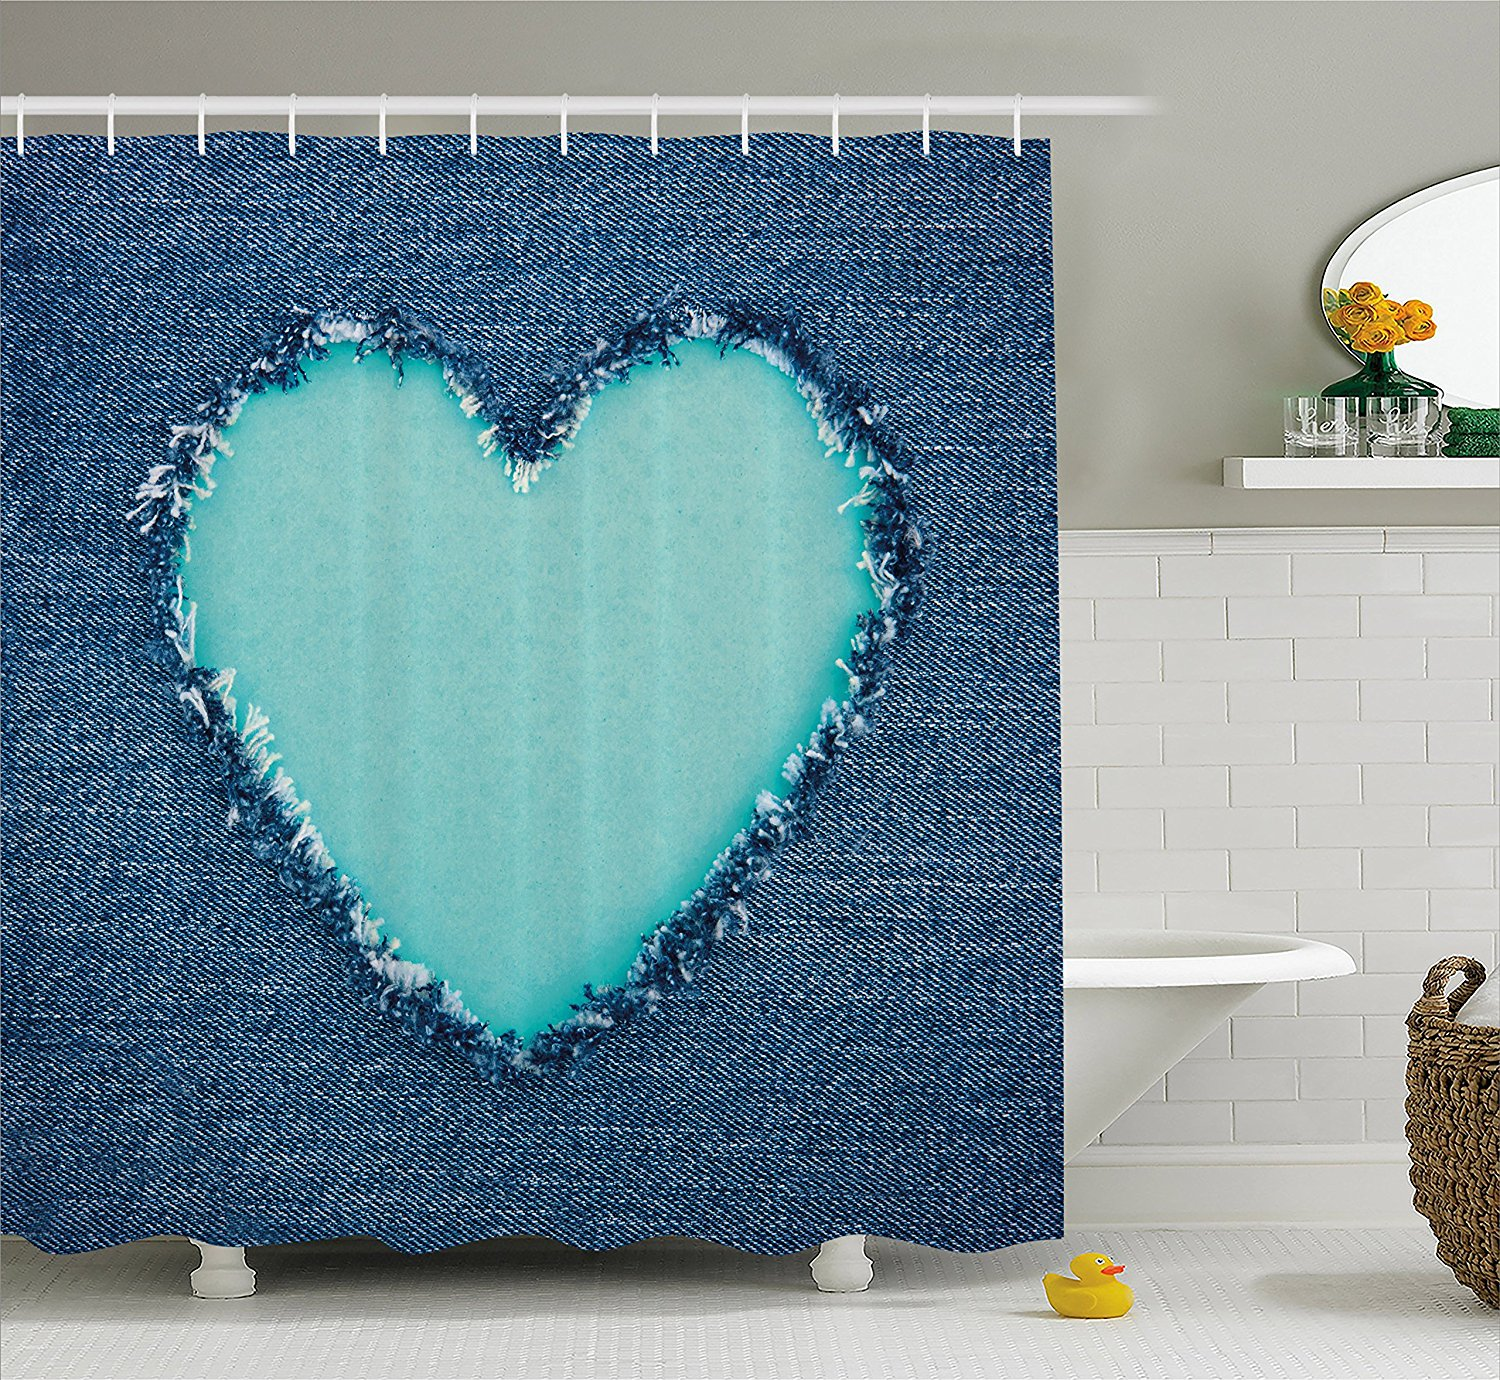 Navy And Teal Shower Curtain Ripped Denim Jean Fabric Image Heart Shape  Love Romance Valentines Day Fabric Bathroom Decor In Shower Curtains From  Home ...